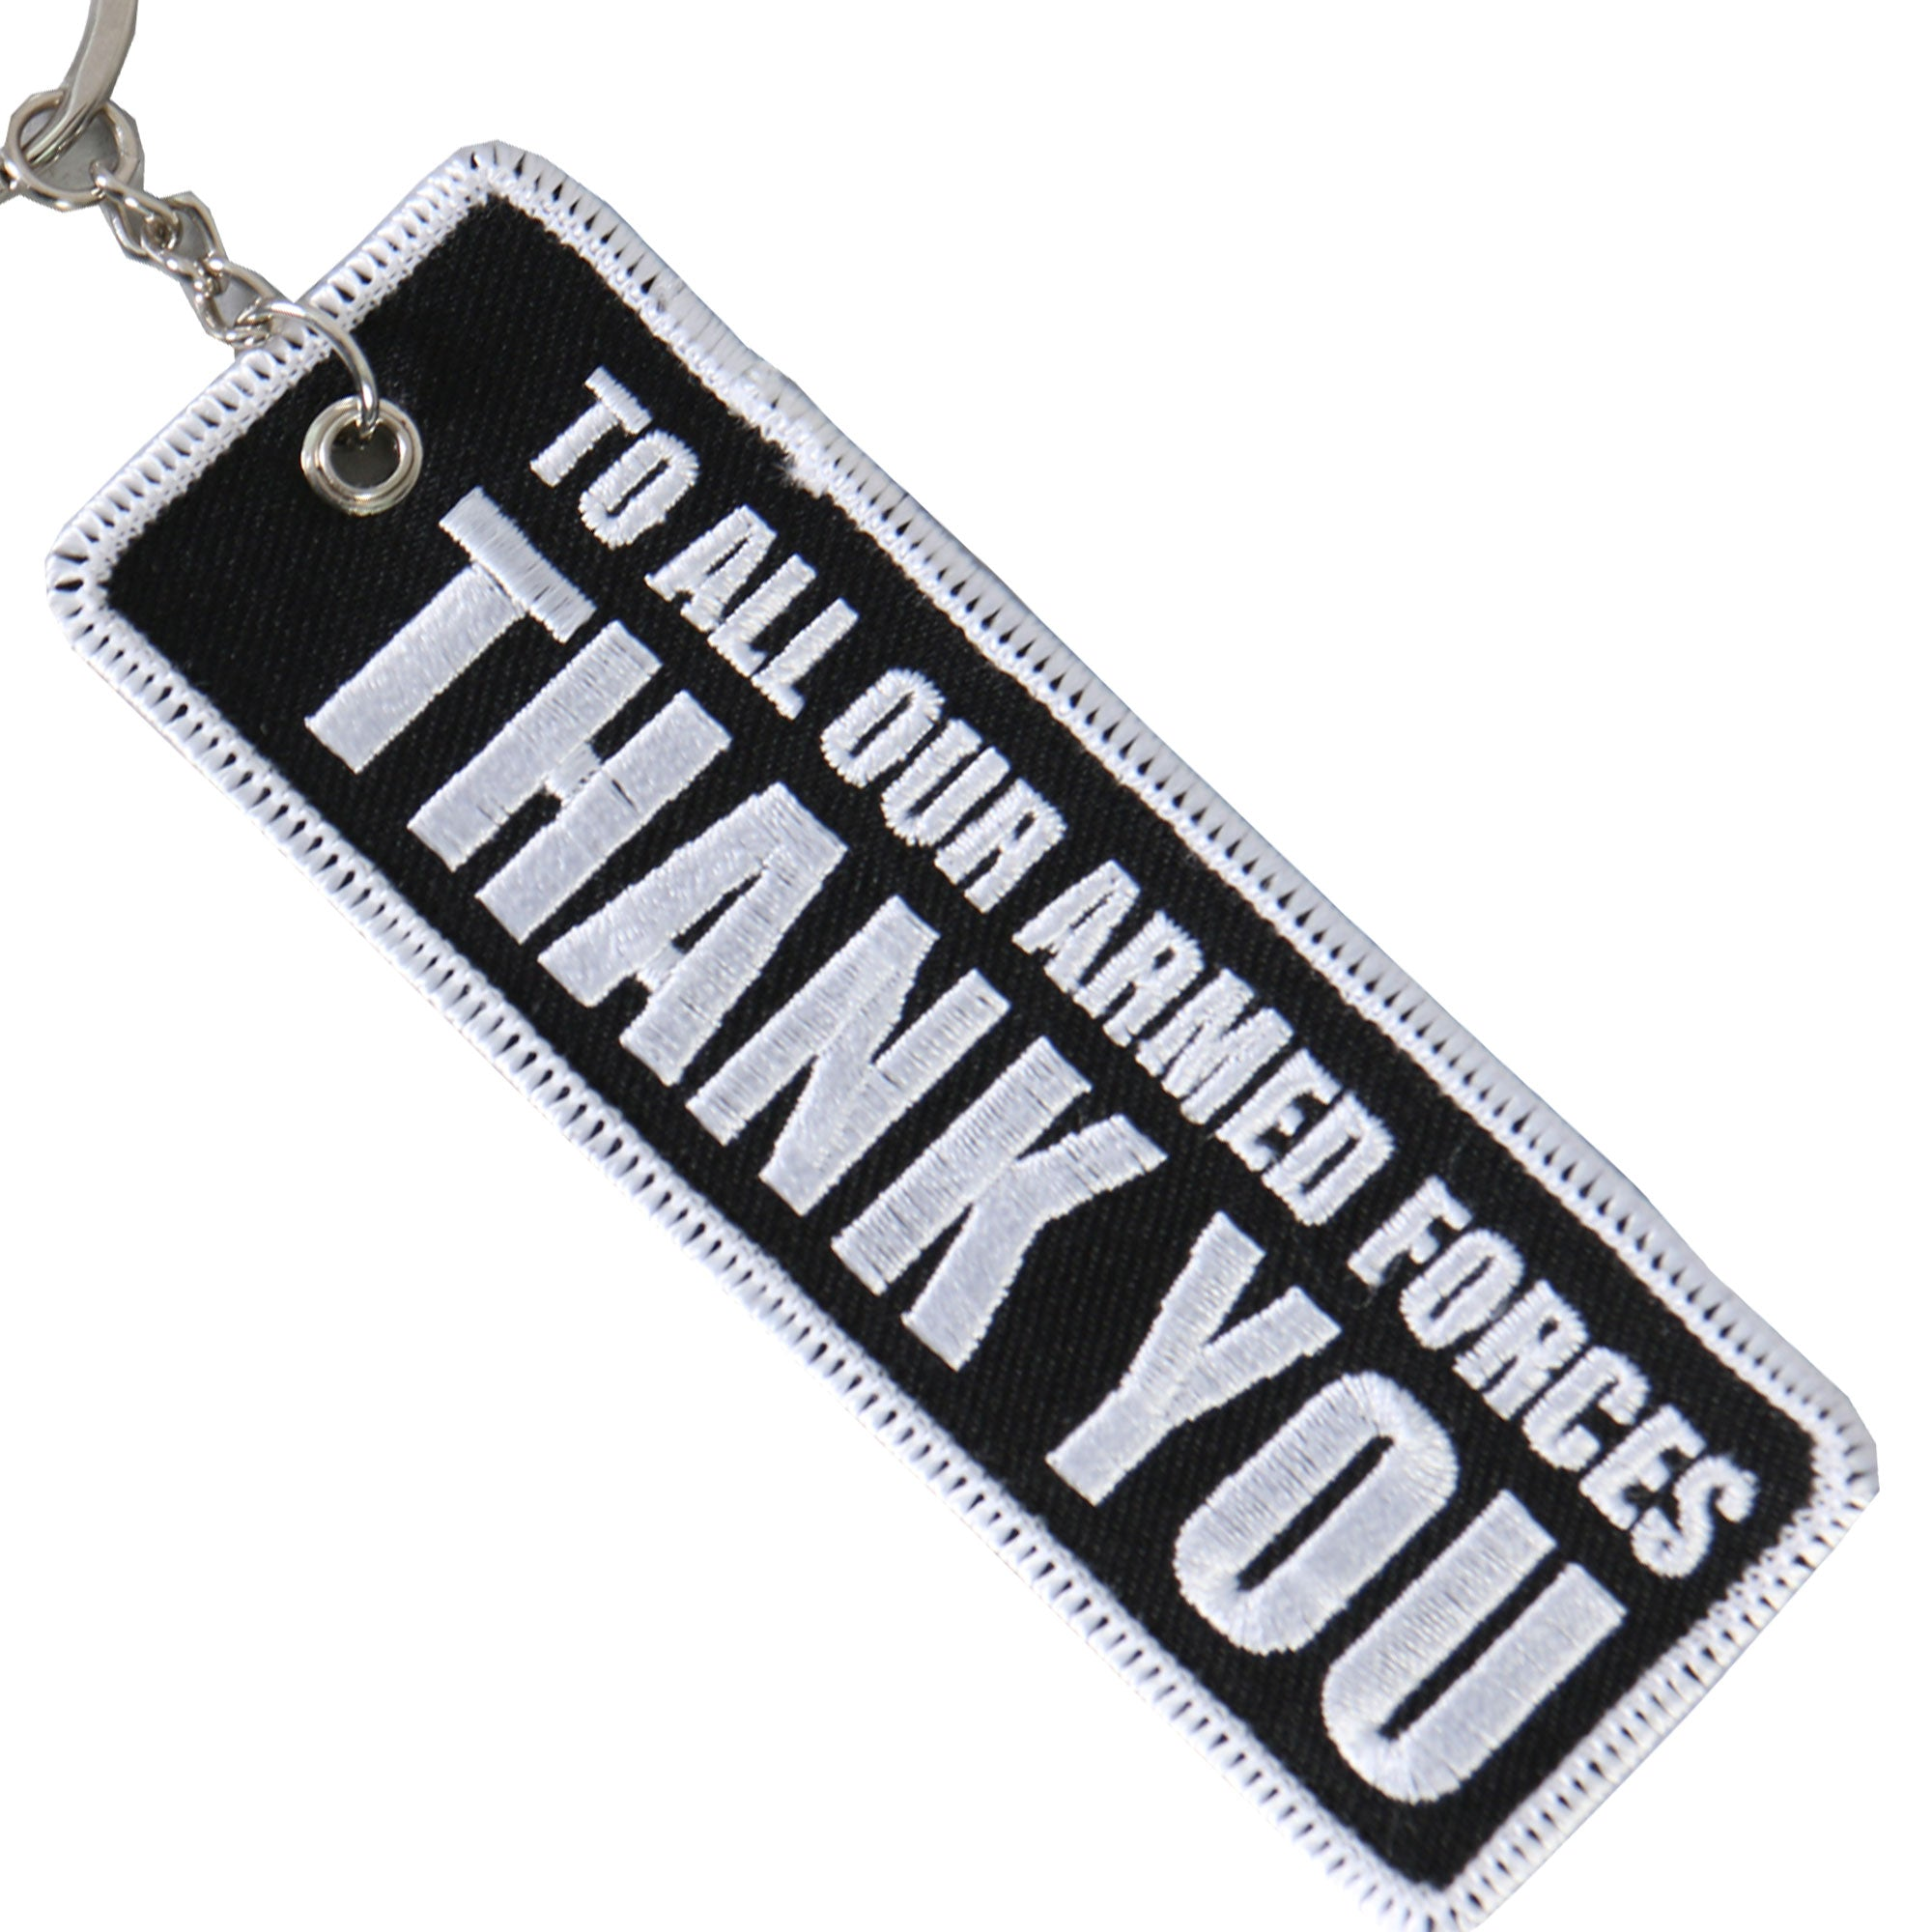 Hot Leathers Too All Our Armed Forces Thank You Embroidered Key Chain